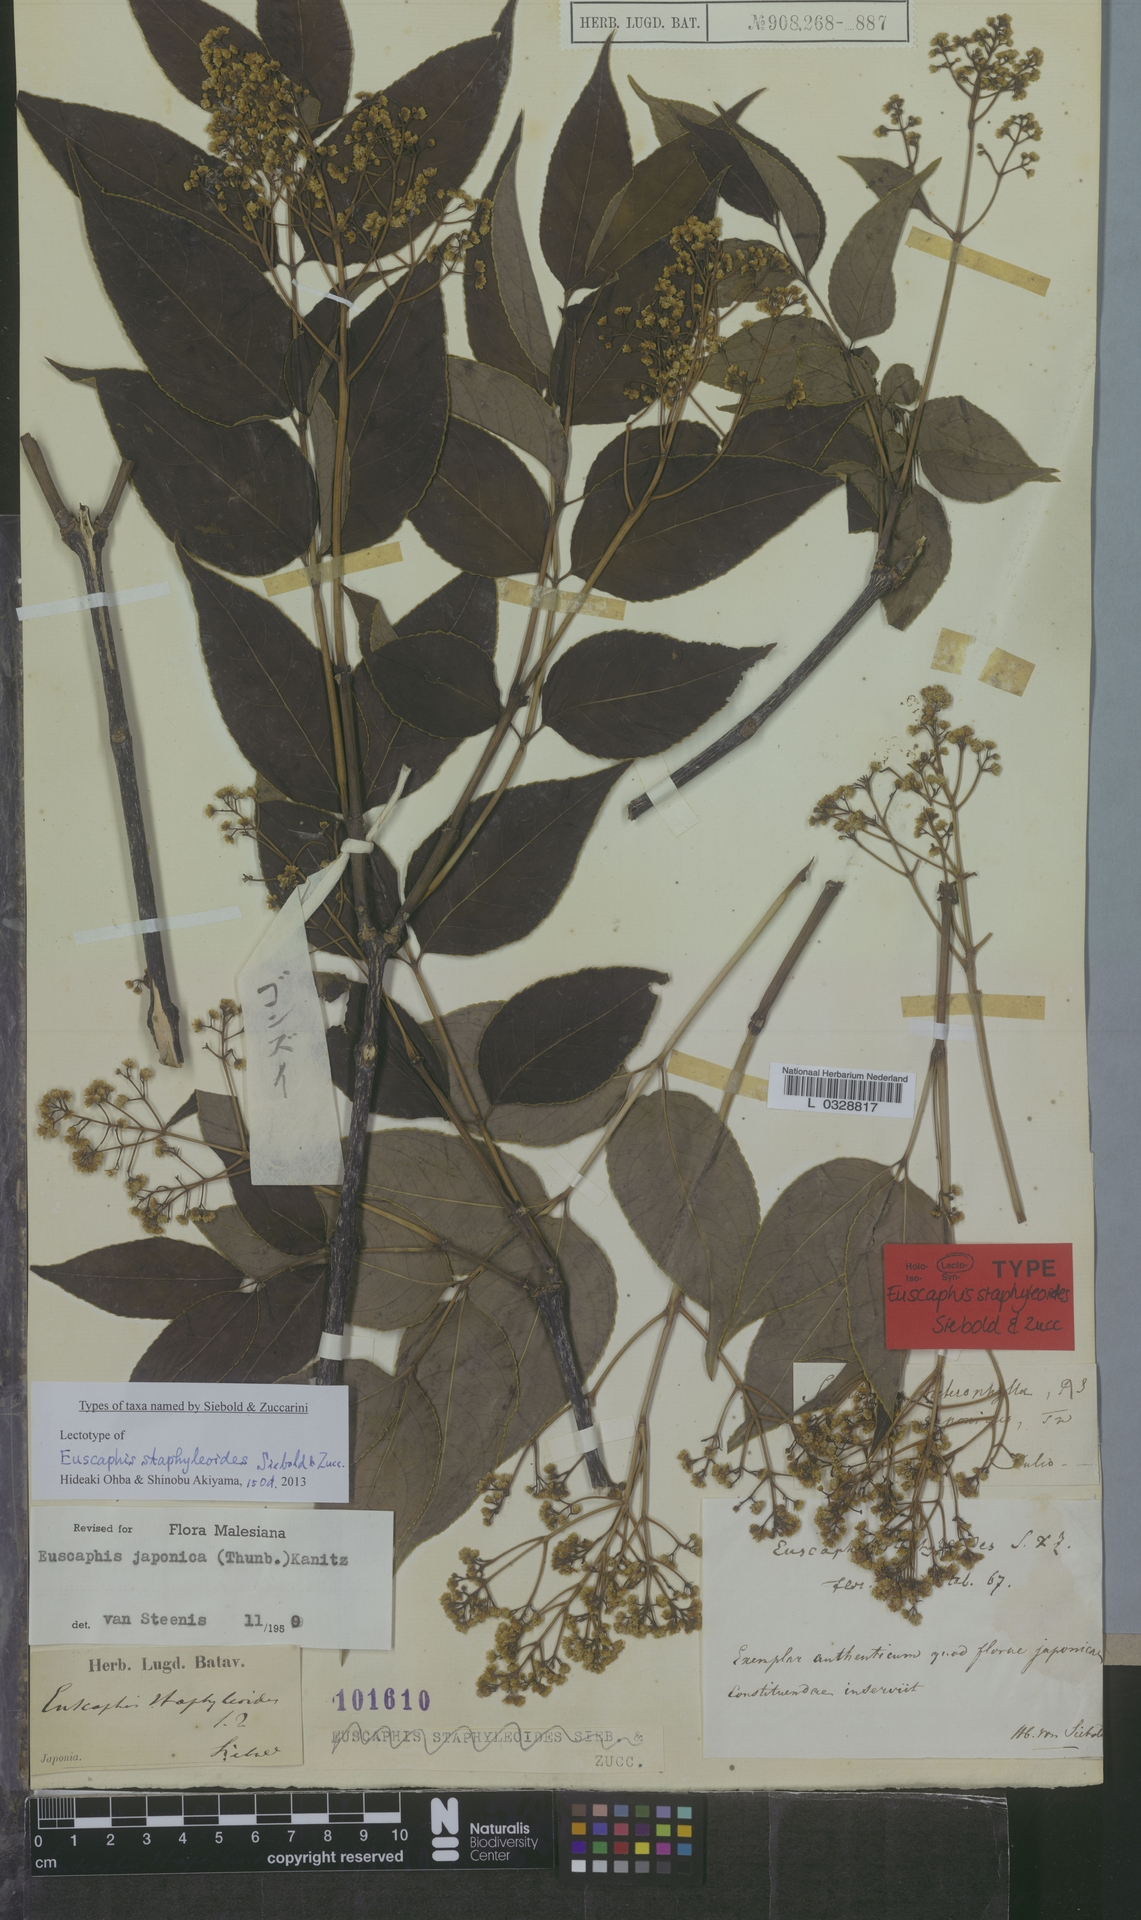 L  0328817 | Euscaphis japonica (Thunb.) Kanitz